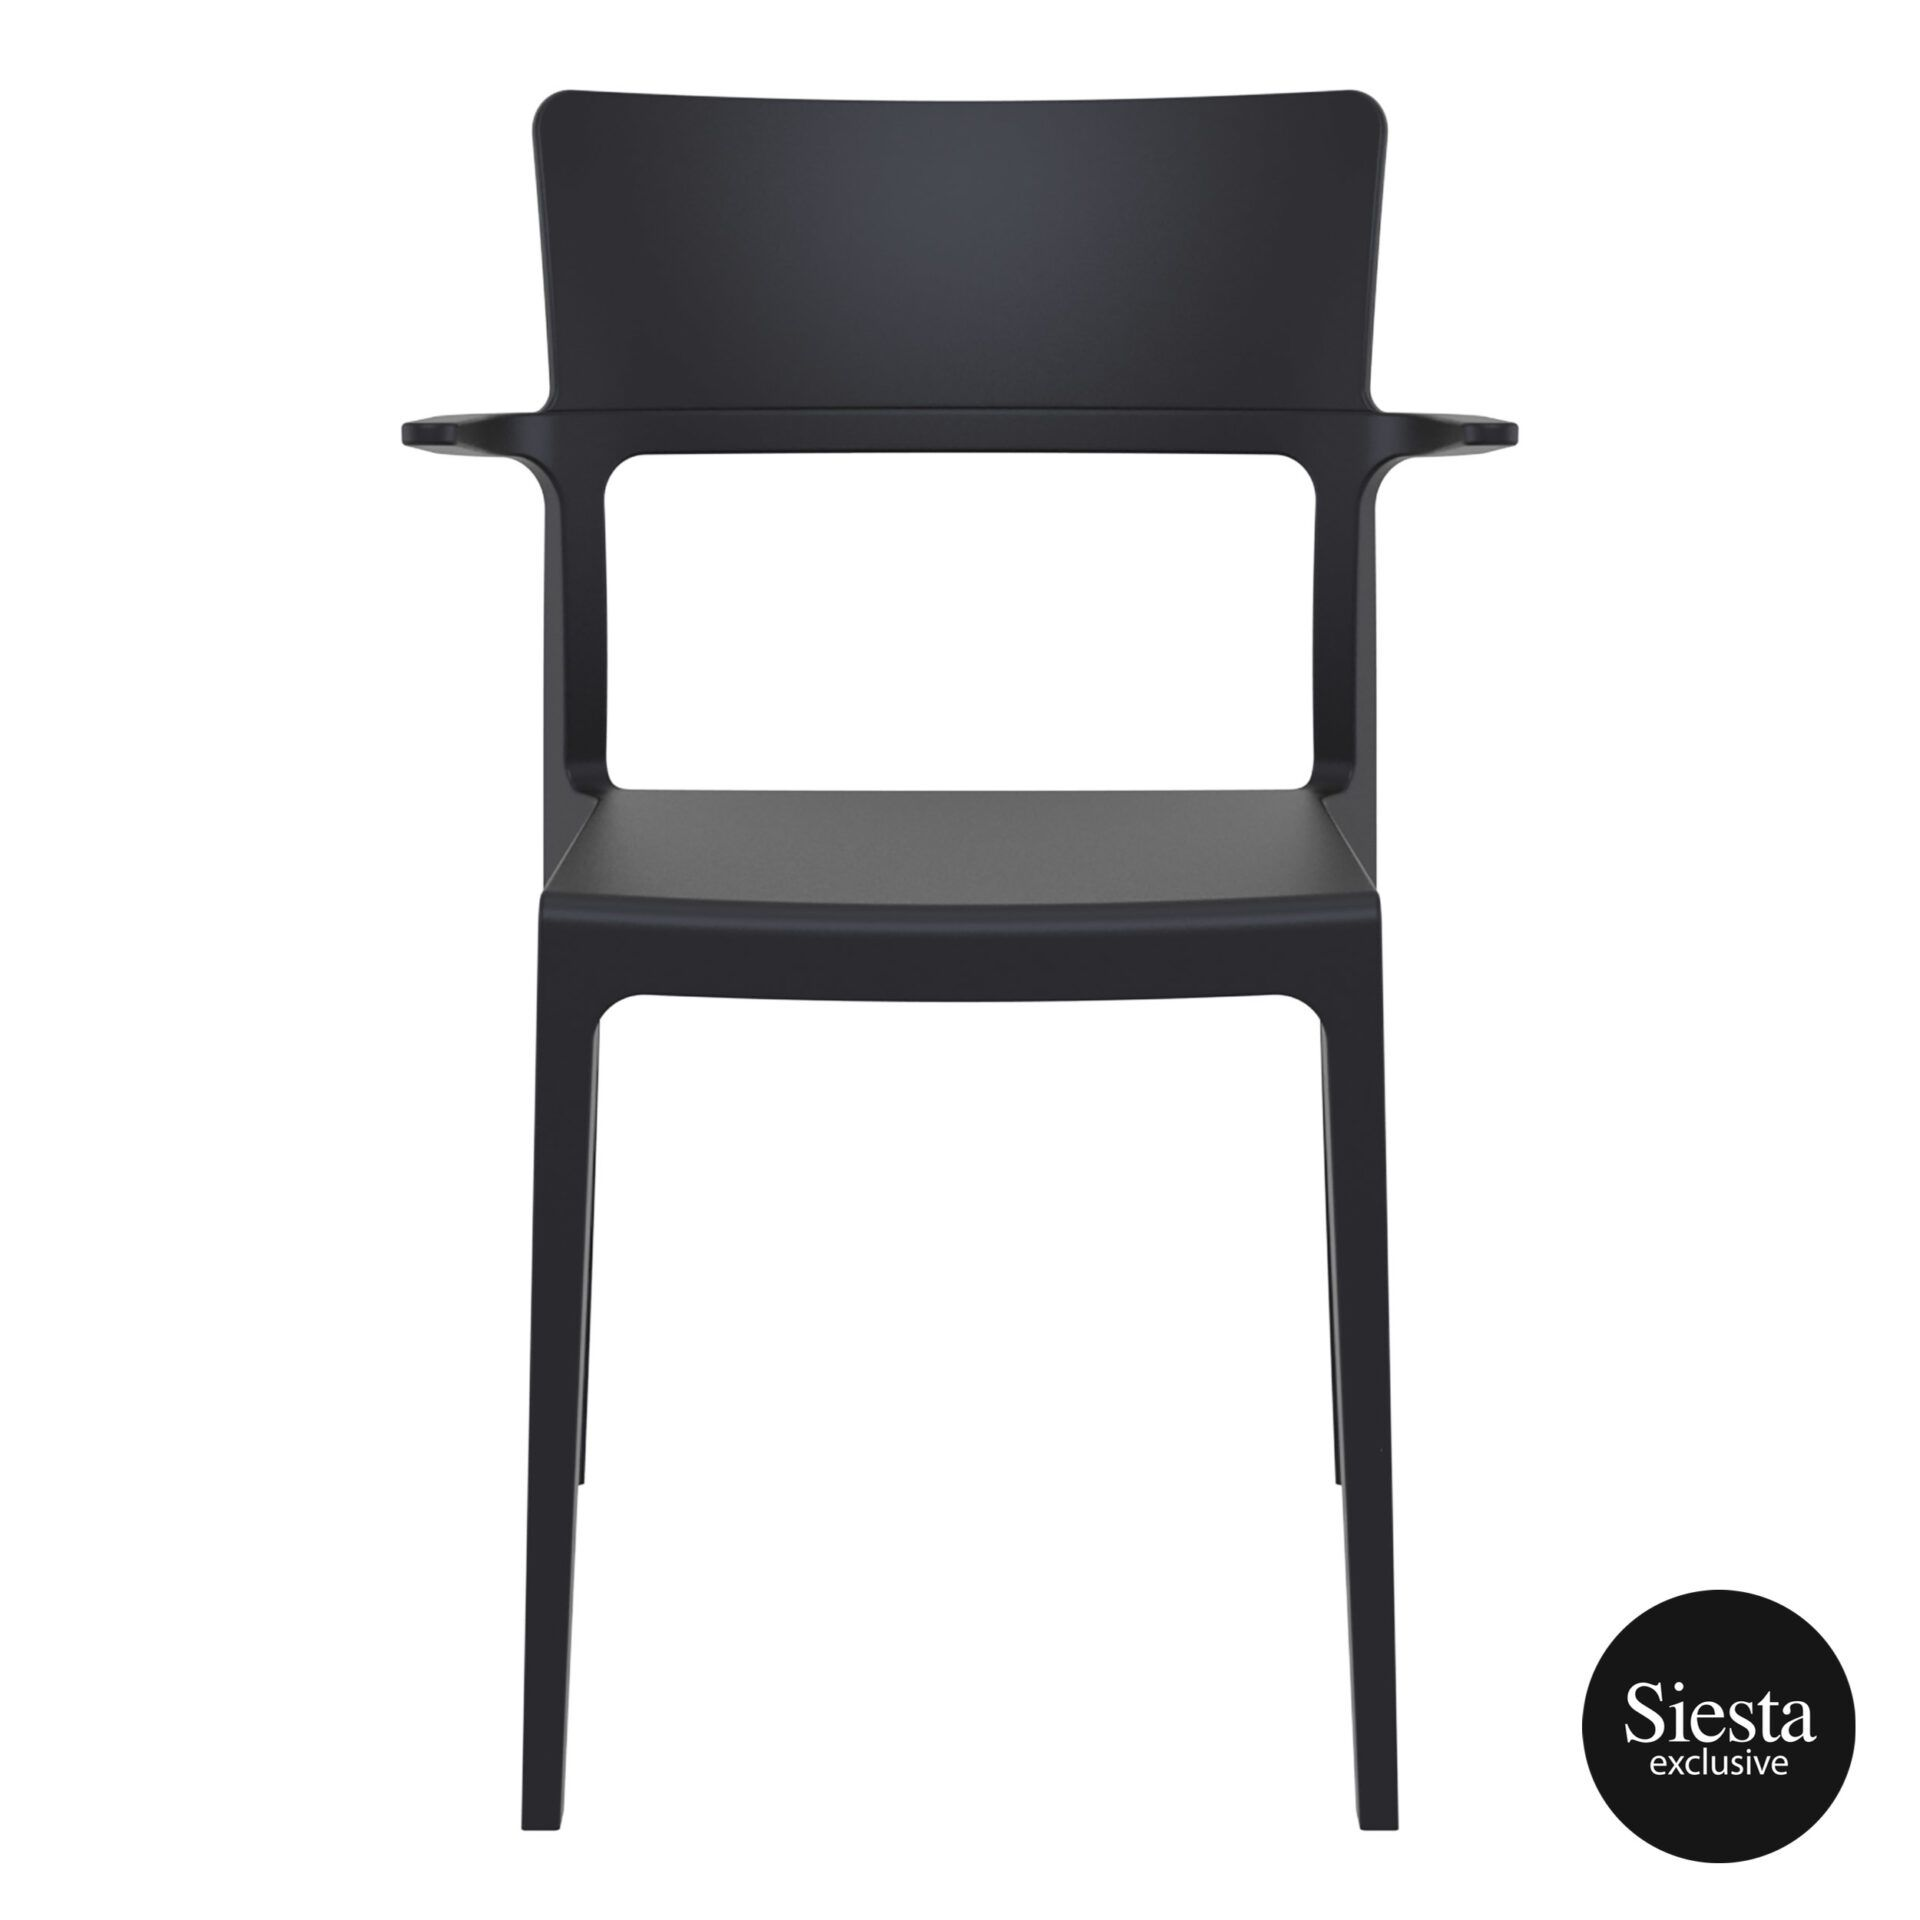 hospitality dining polypropylene plus chair black front 1